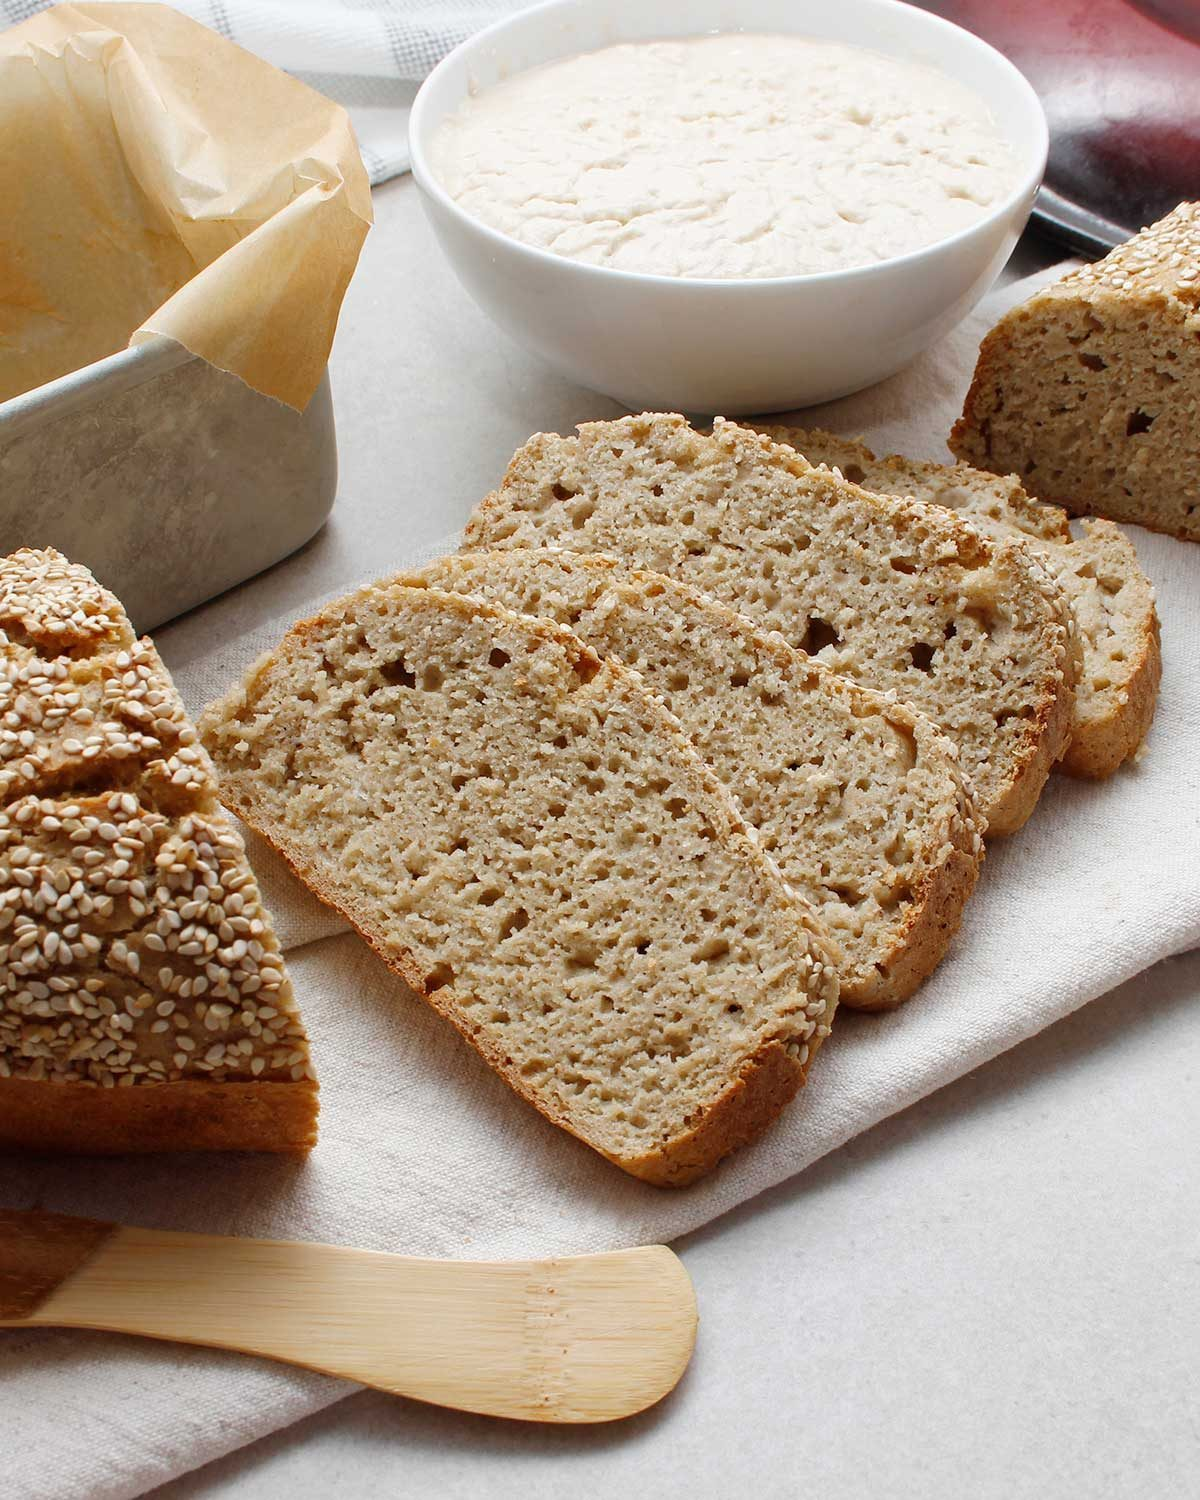 Simple 4-ingredient BBQ baked and sliced gluten-free sourdough loaf.